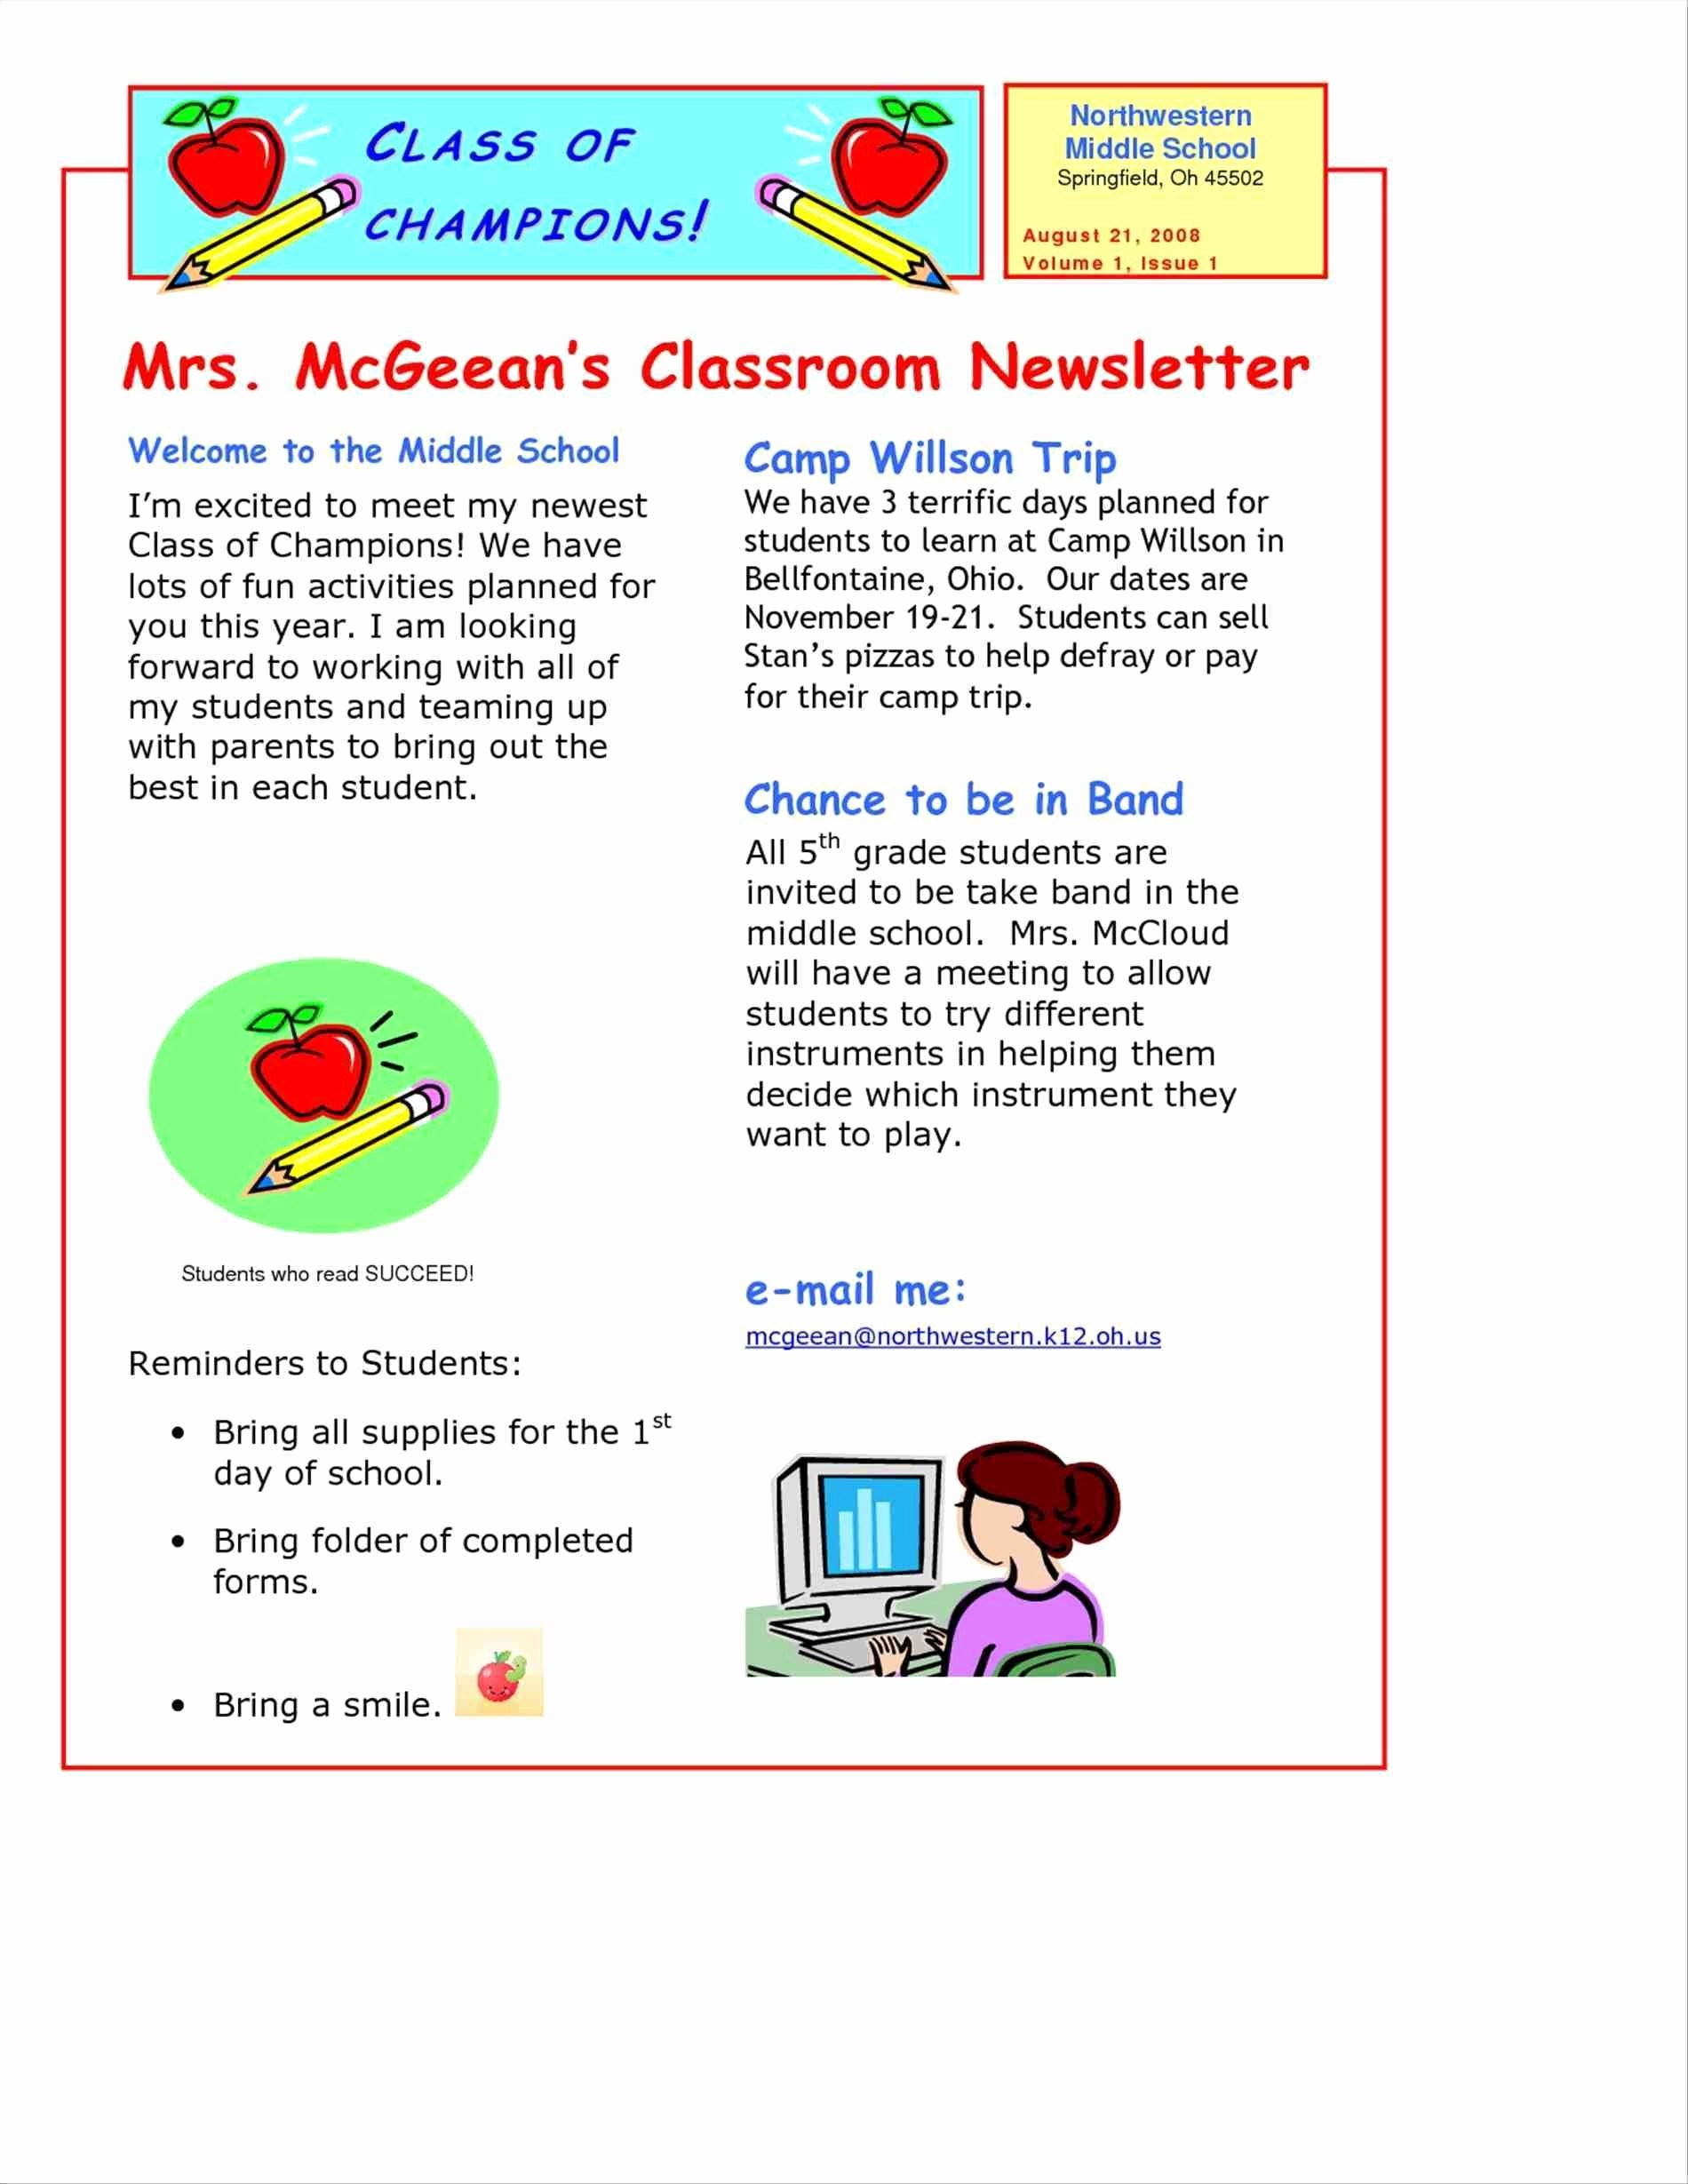 Free Teacher Newsletter Templates Word Unique Free Teacher Newsletter Templates